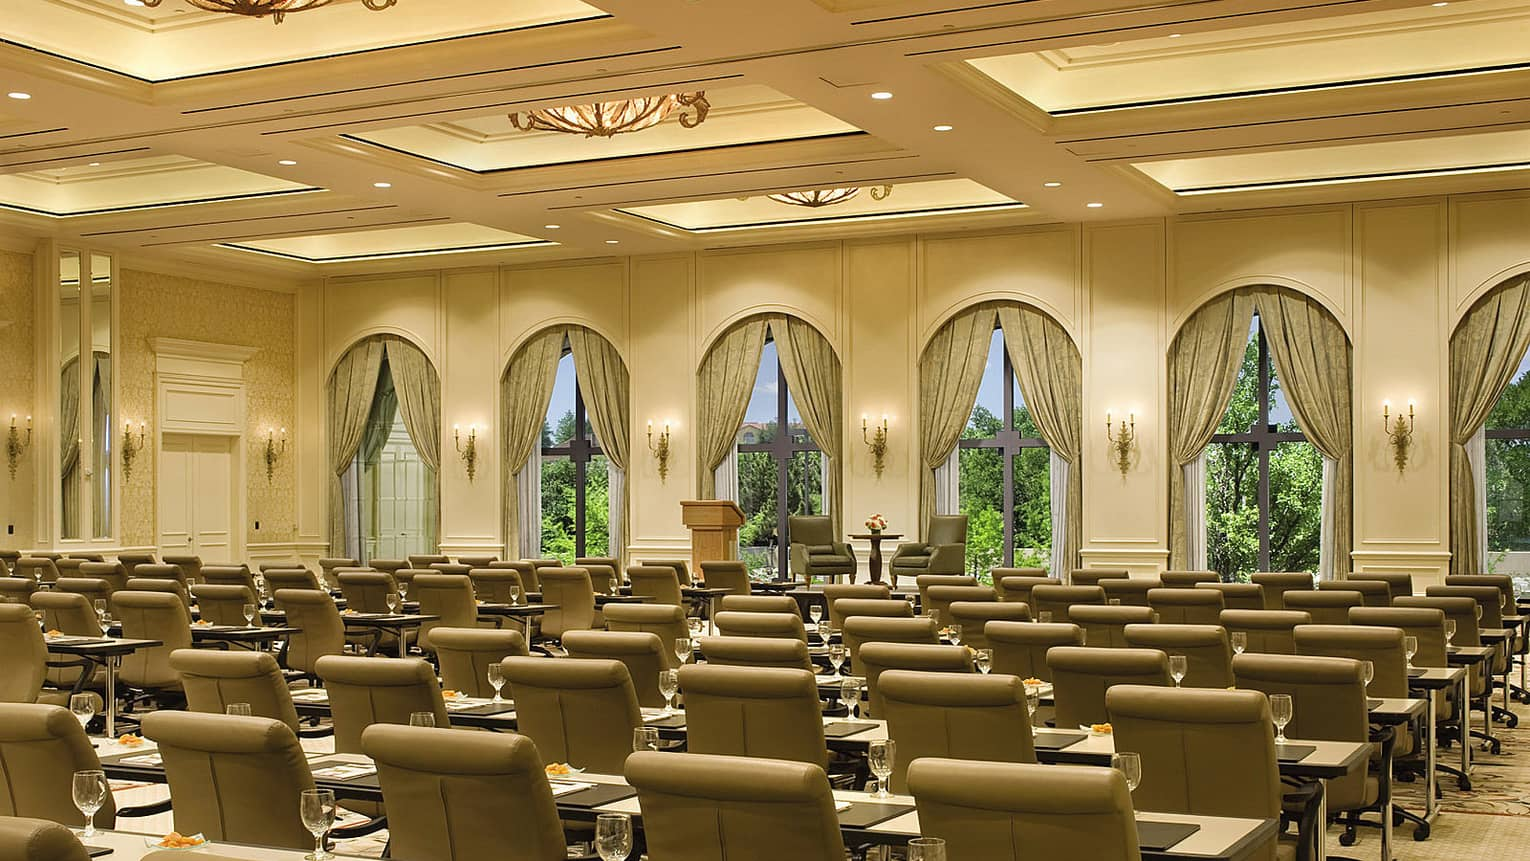 Rows of leather executive chairs, tables in Four Seasons Ballroom meeting room